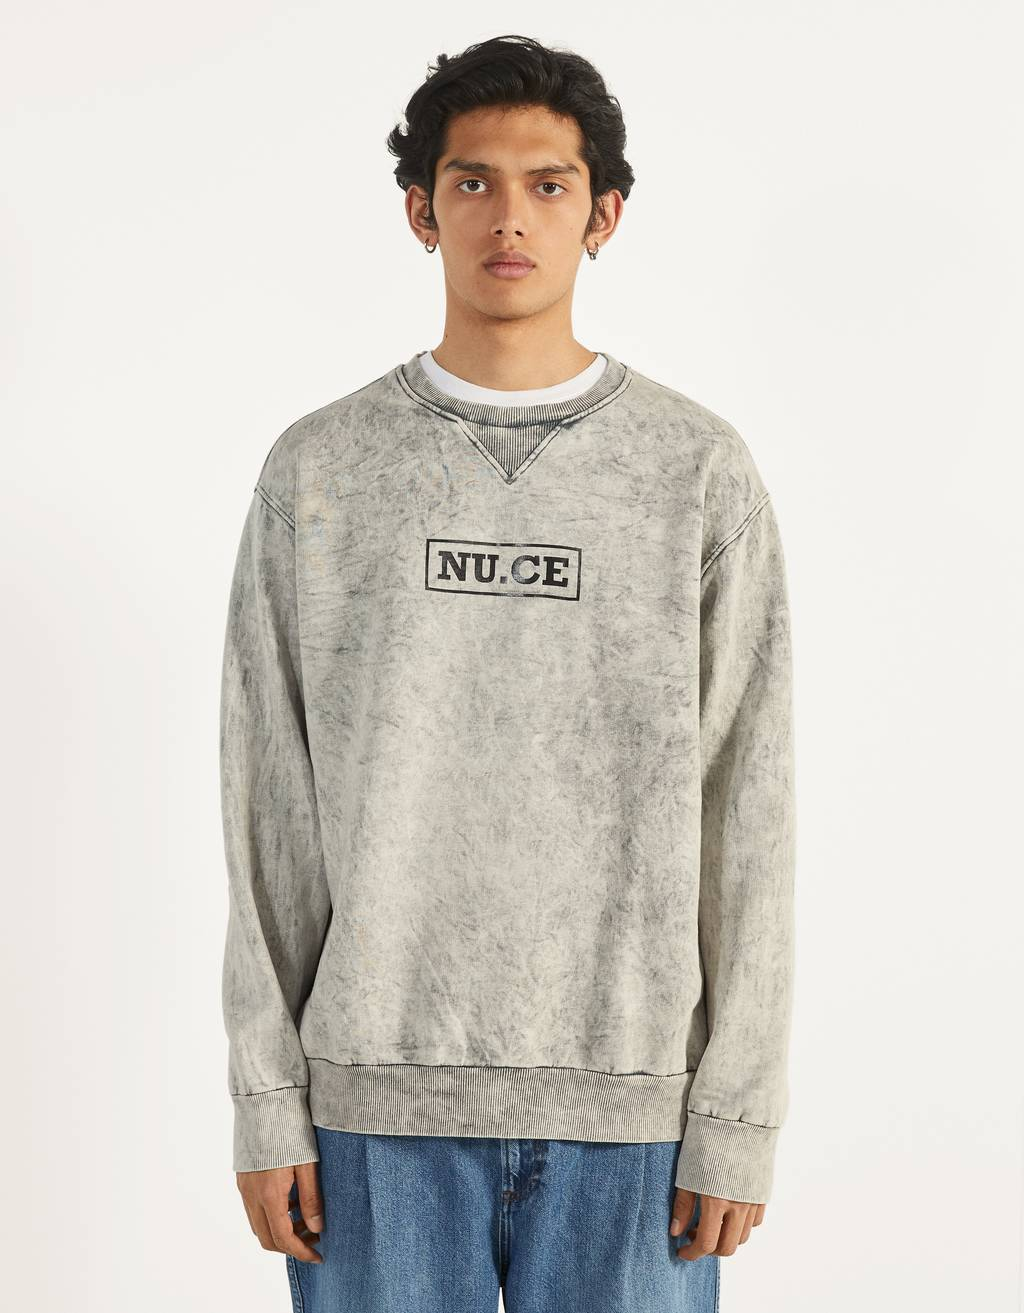 Sweatshirt com acid wash e estampado